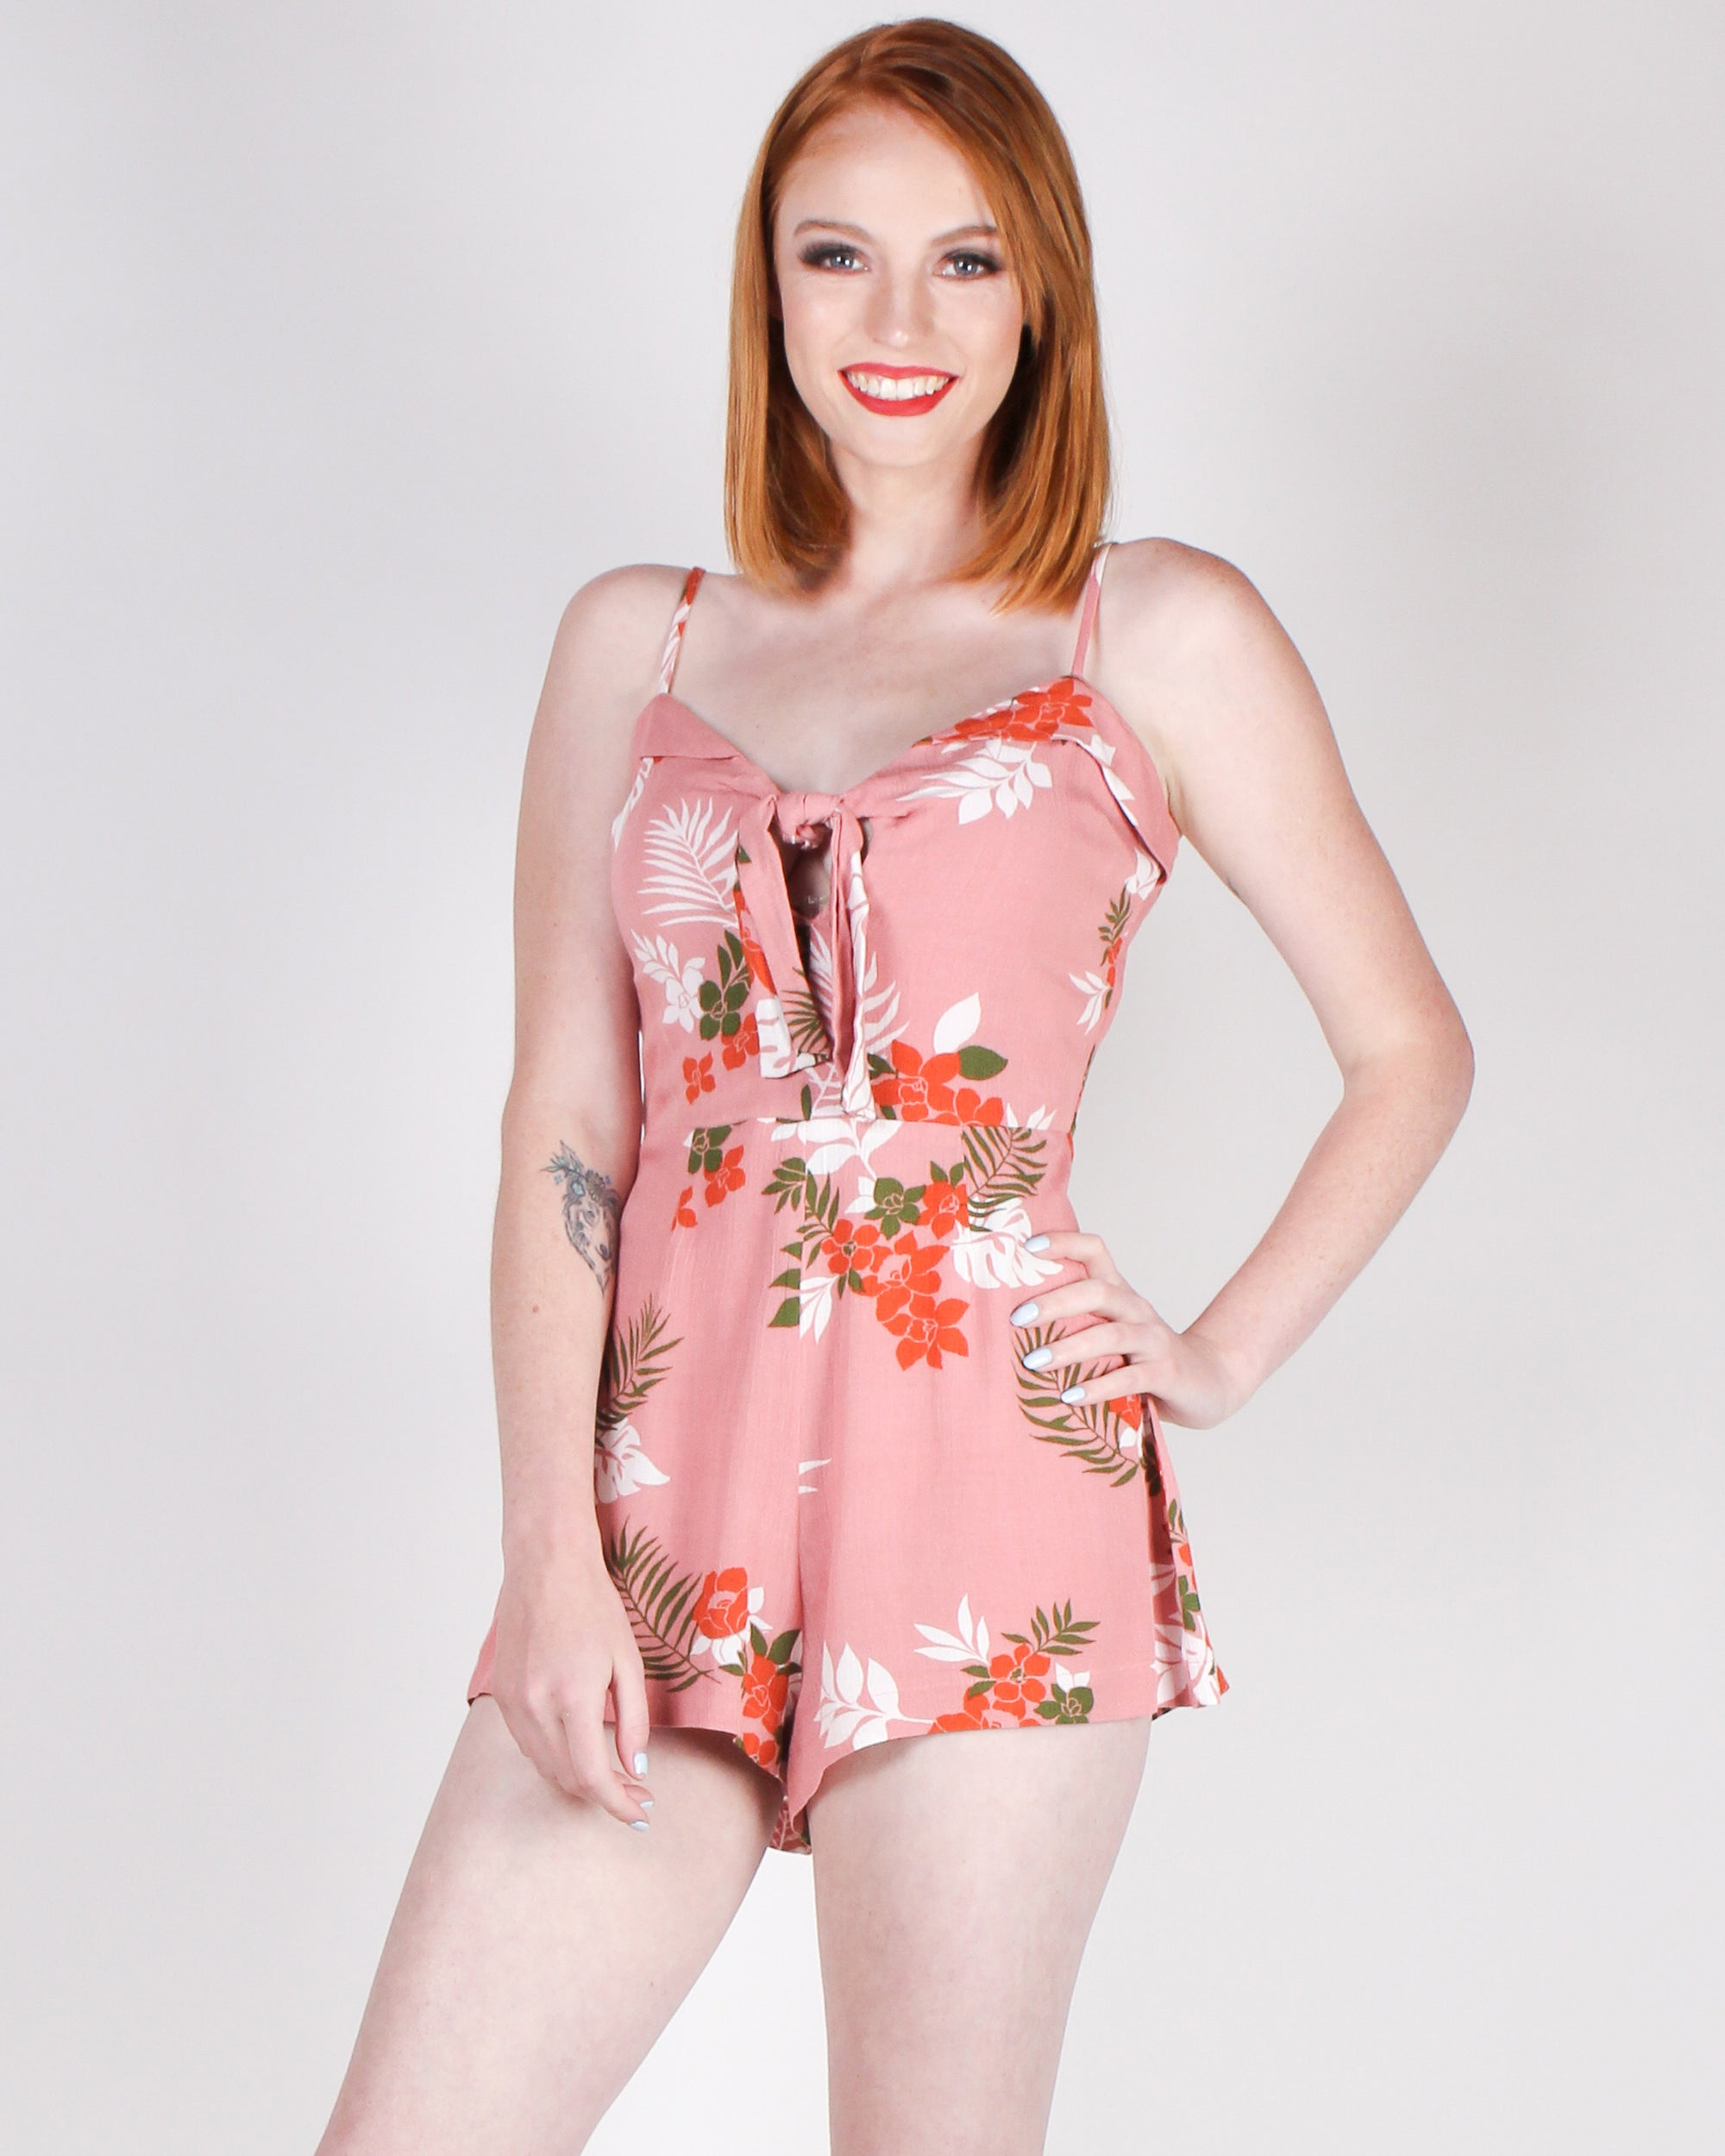 Fashion Q Shop Q Vacation Vibes Romper (Mauve) BE6816F